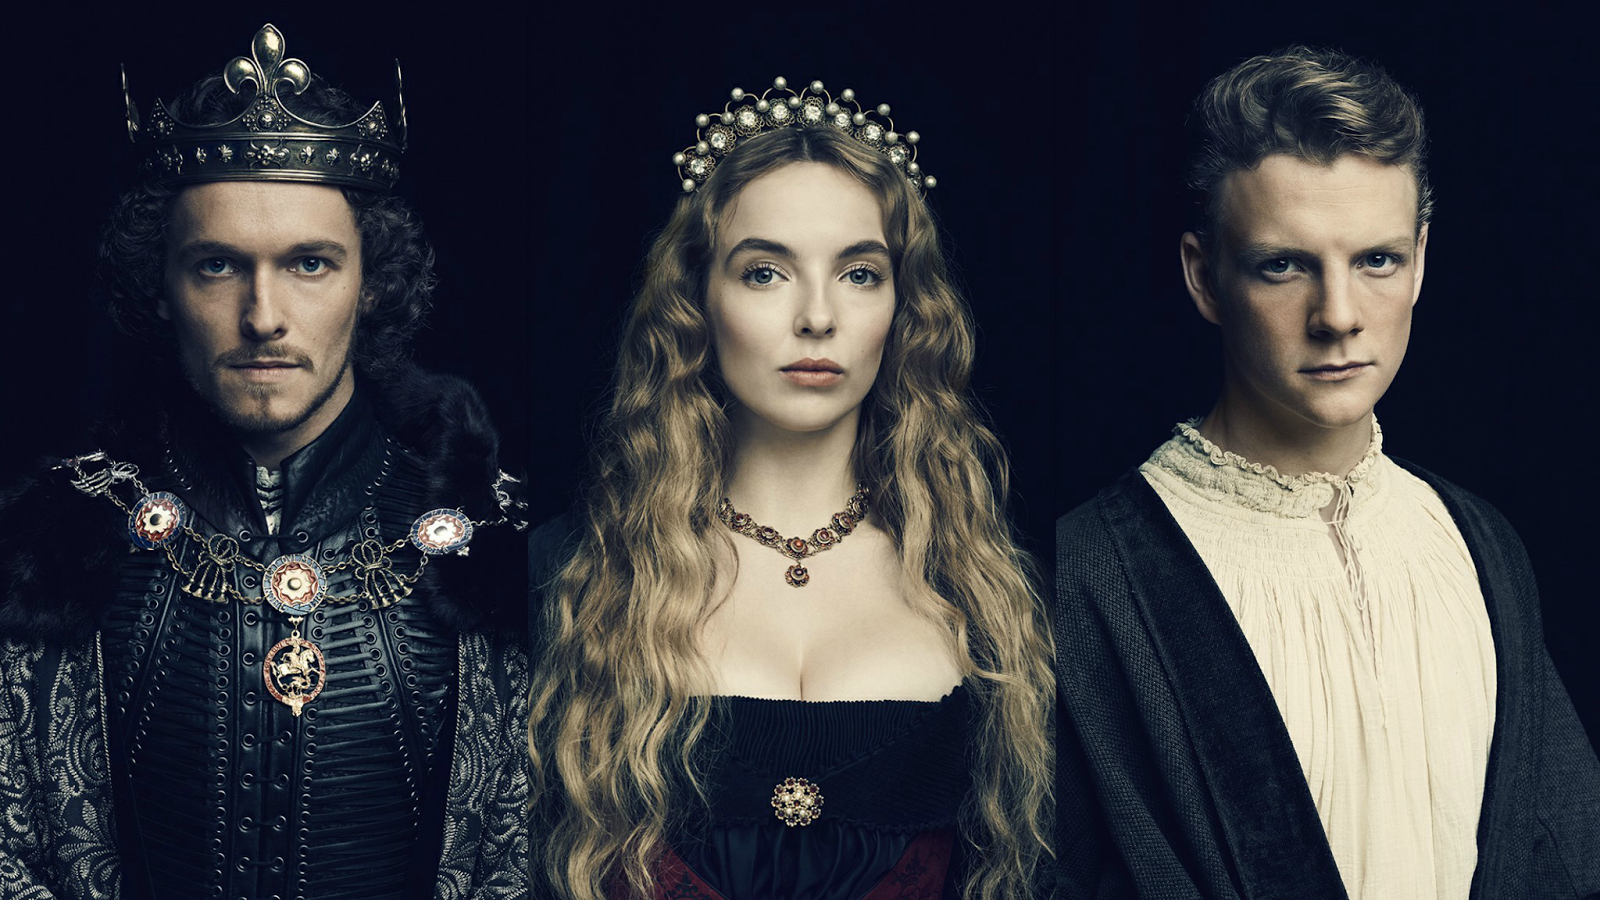 Promotional Portraits of Henry VII (Jacob Collins-Levy), Lizzie (Jodie Comer) and The Boy (Patrick Gibson) for The White Princess